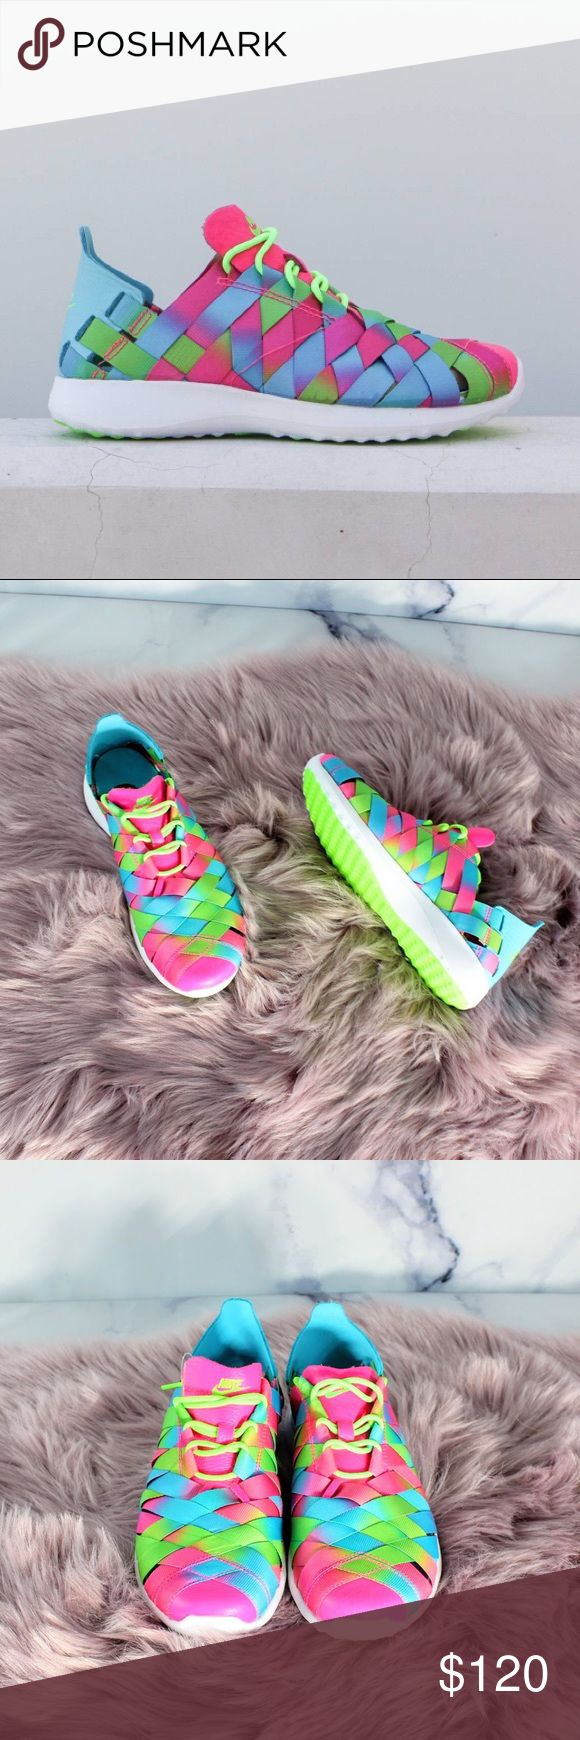 Nike Juvenate Woven Premium Gamma Pink Green 7.5 7.5 Women's. •CONDITION: new without box.  •FLAWS: No pilling, stains, or rips. •If you like it, feel free to make me a reasonable offer -OR- bundle your likes for me and I'll send you an offer with an exclusive discount! Nike Shoes Sneakers